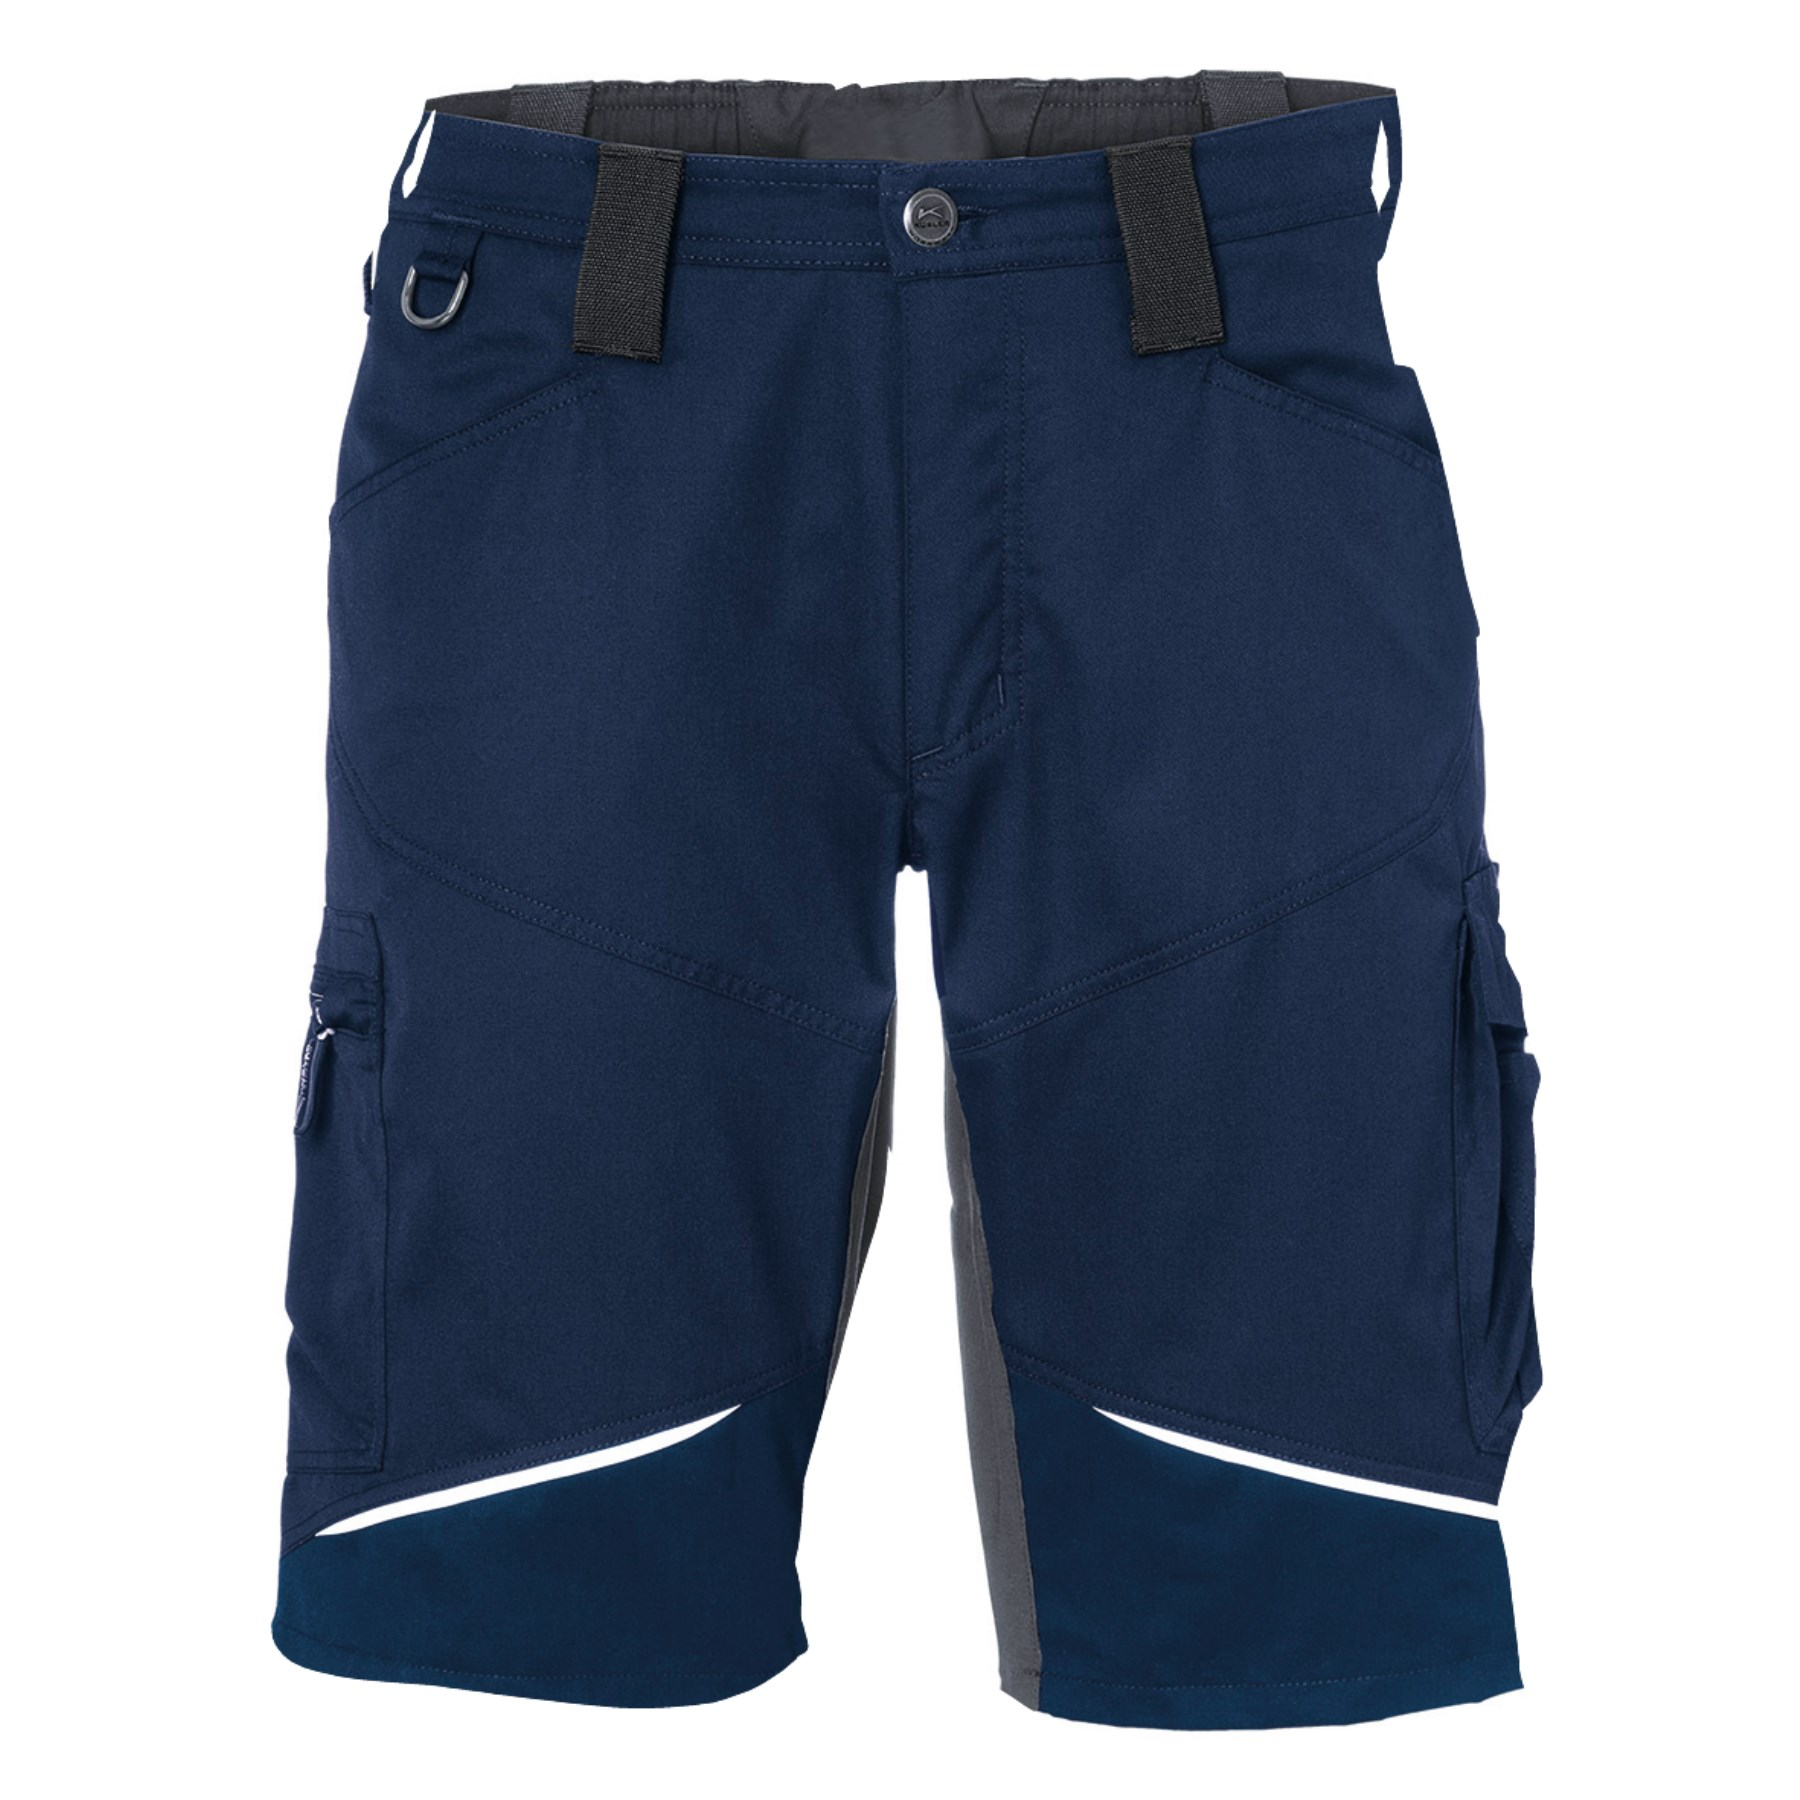 1262355 - Stretch Short Activiq